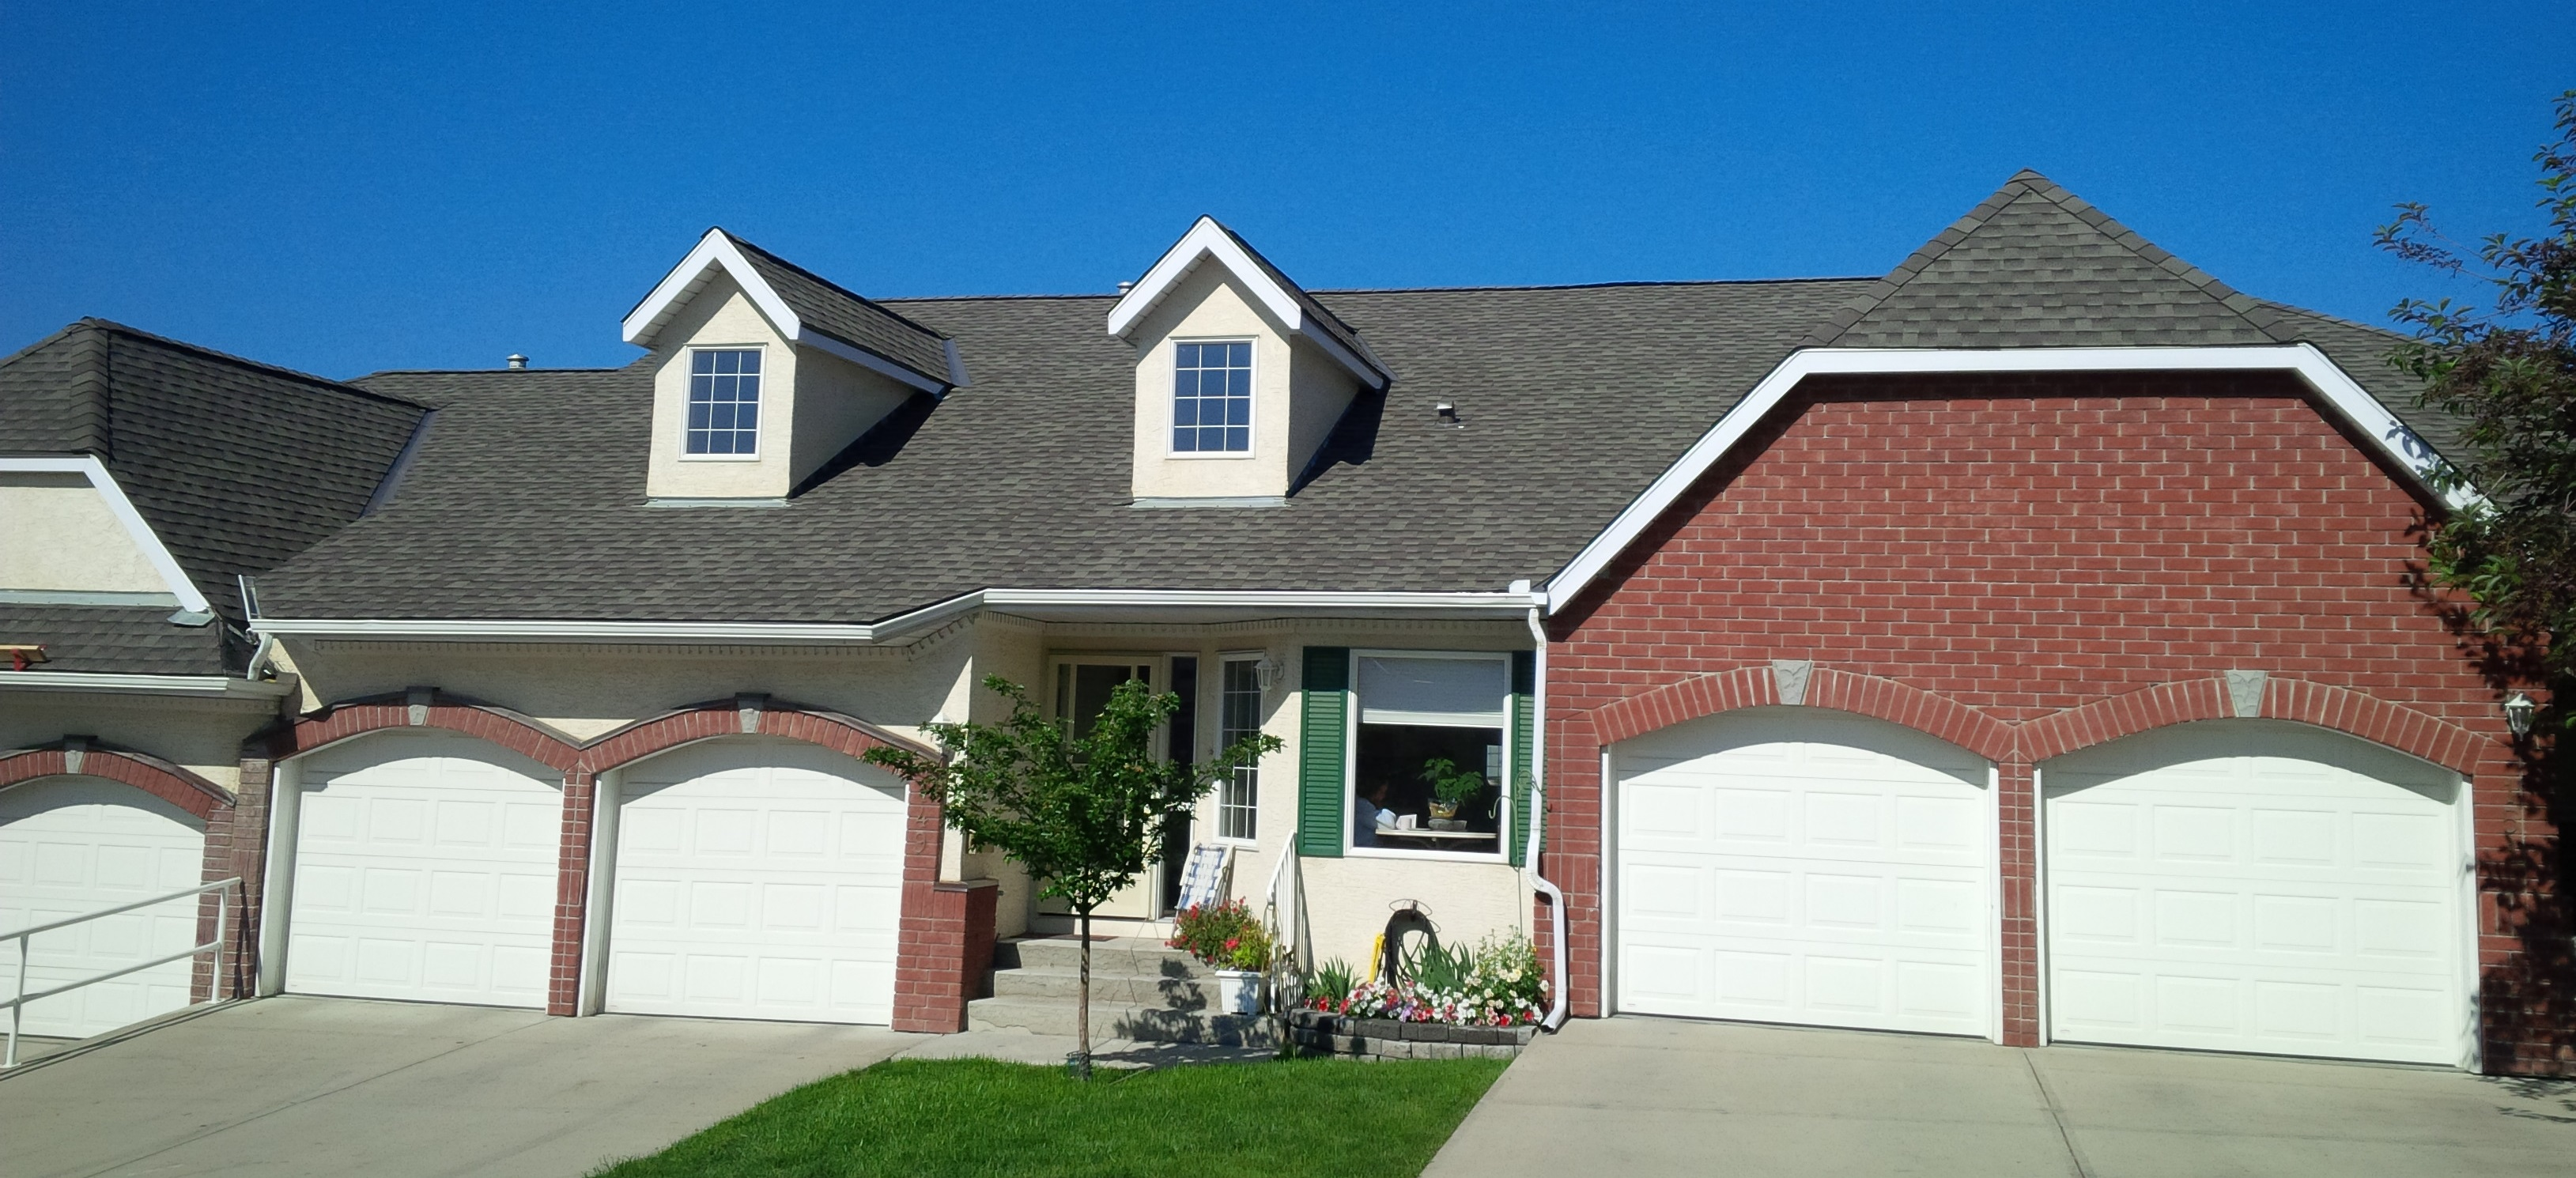 timberline weatherwood re-roof